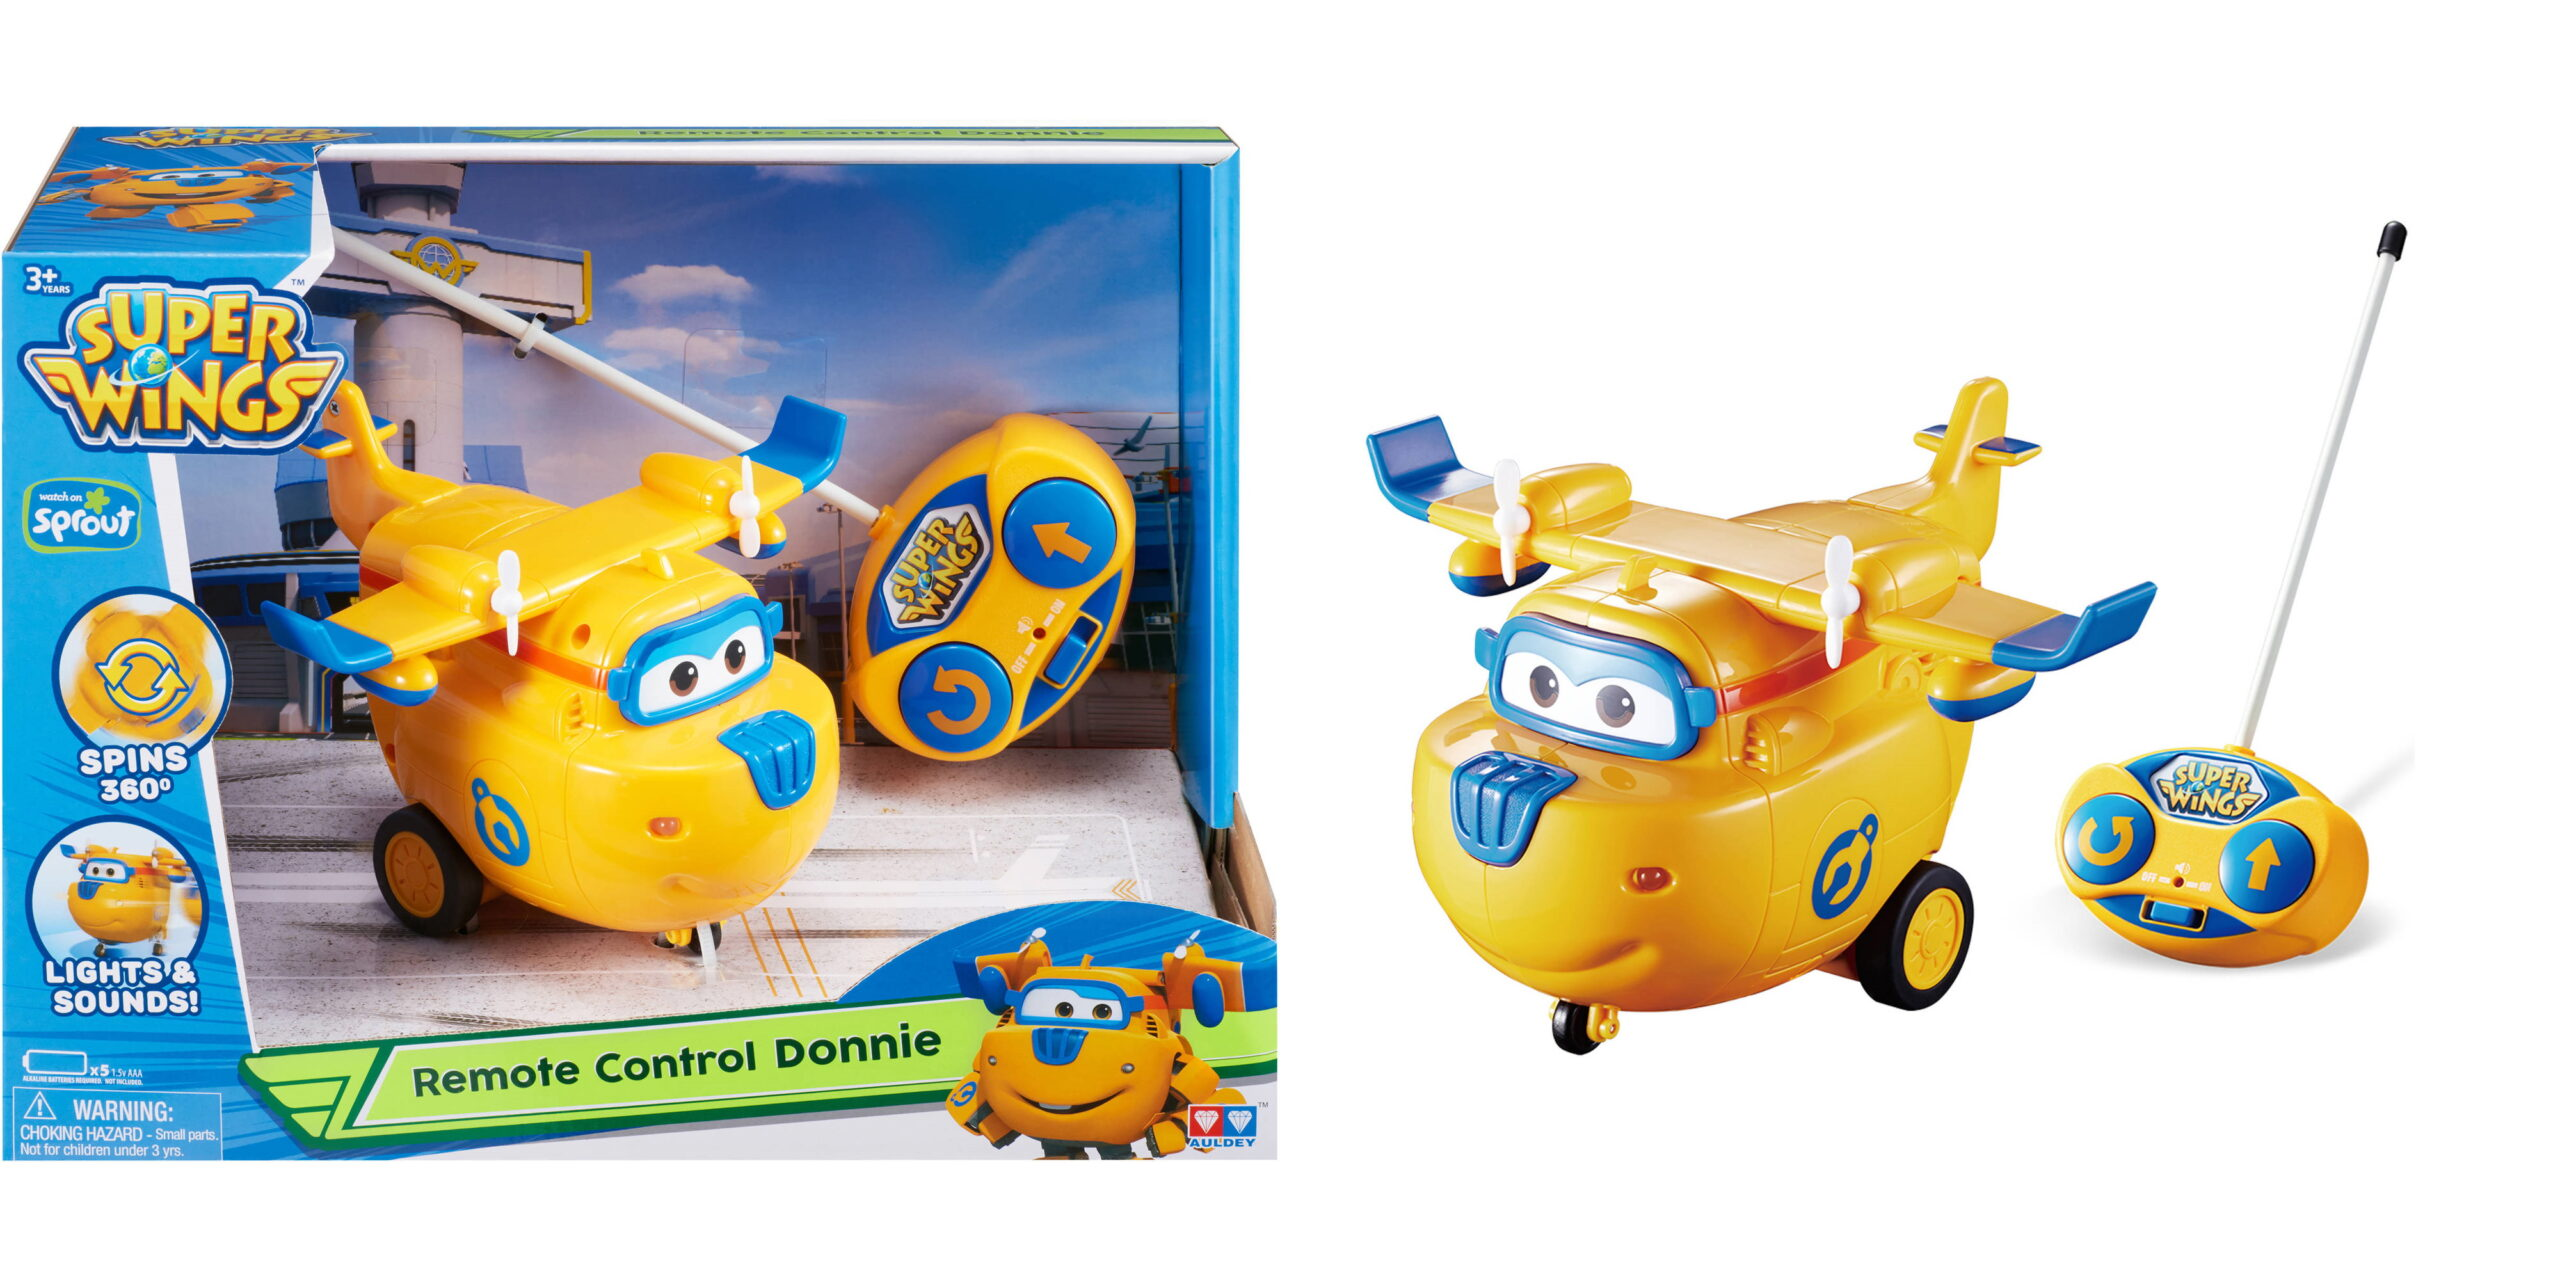 Super Wings Remote Control Donnie